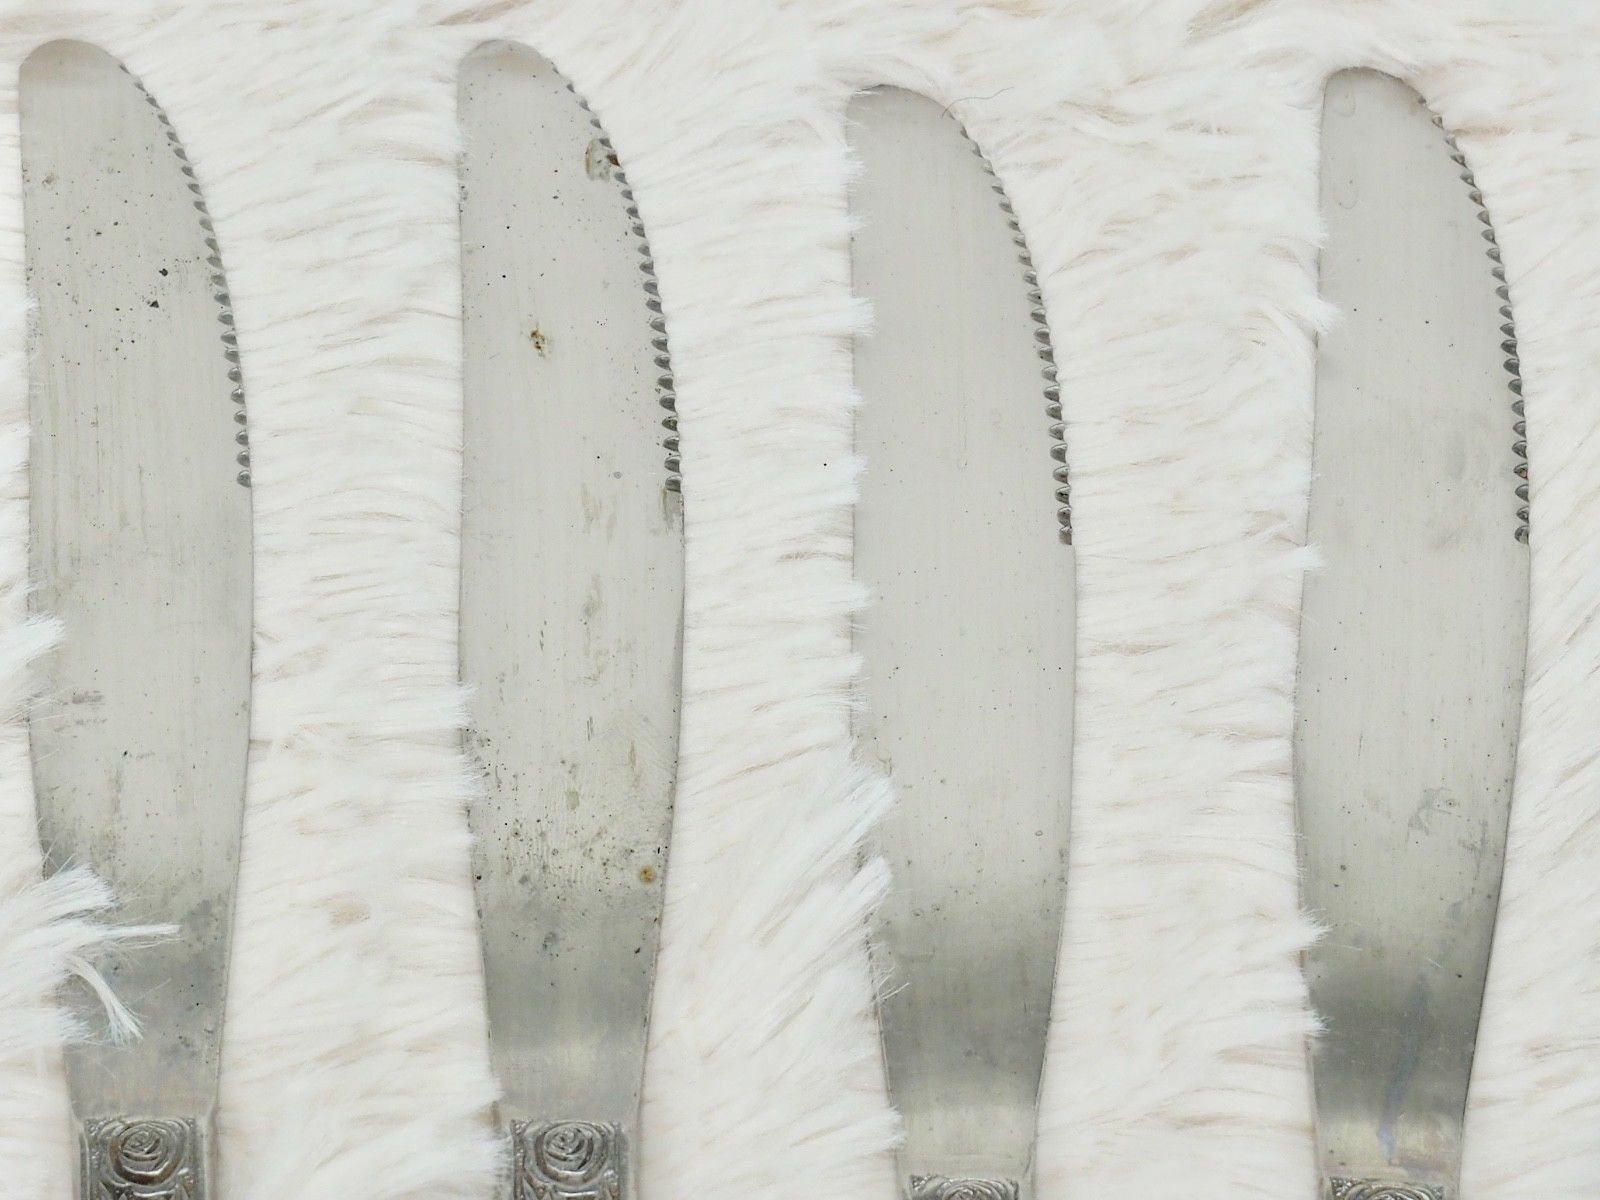 6X Dinner Table Knives Towle Supreme Cutlery LEAF VELVET Stainless Daisy Floral